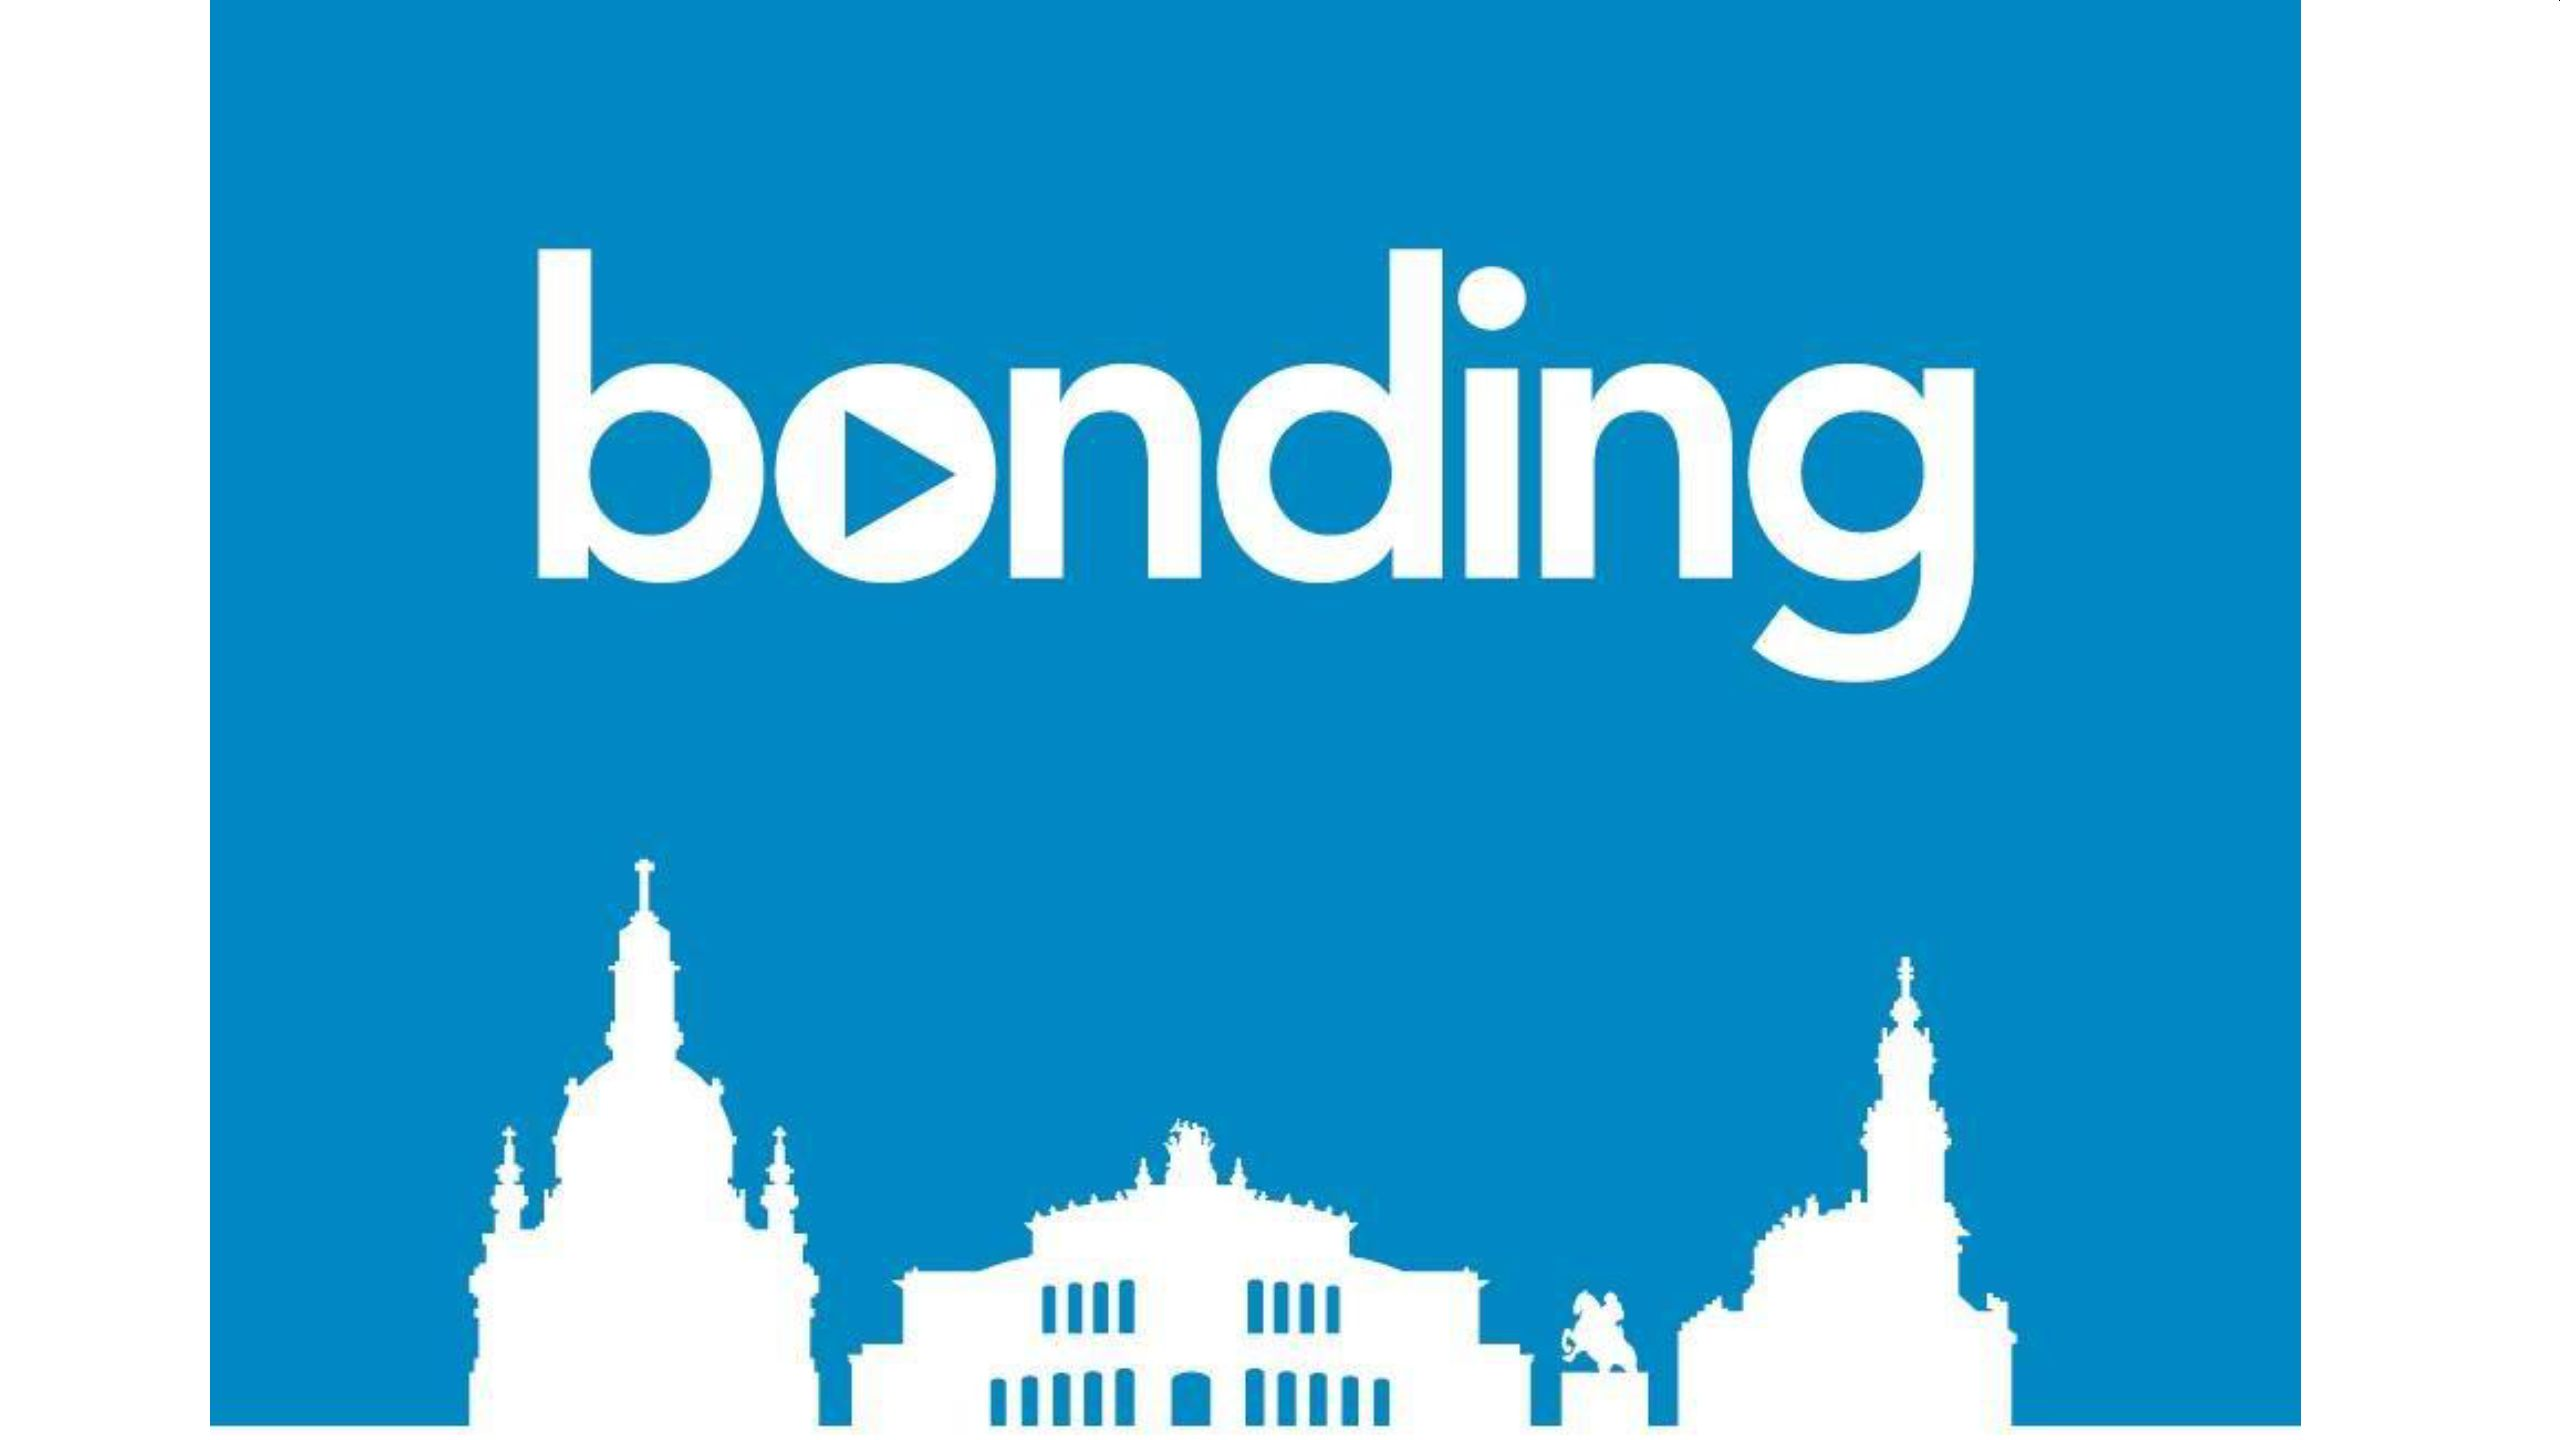 event karriere bonding Dresden 16 9